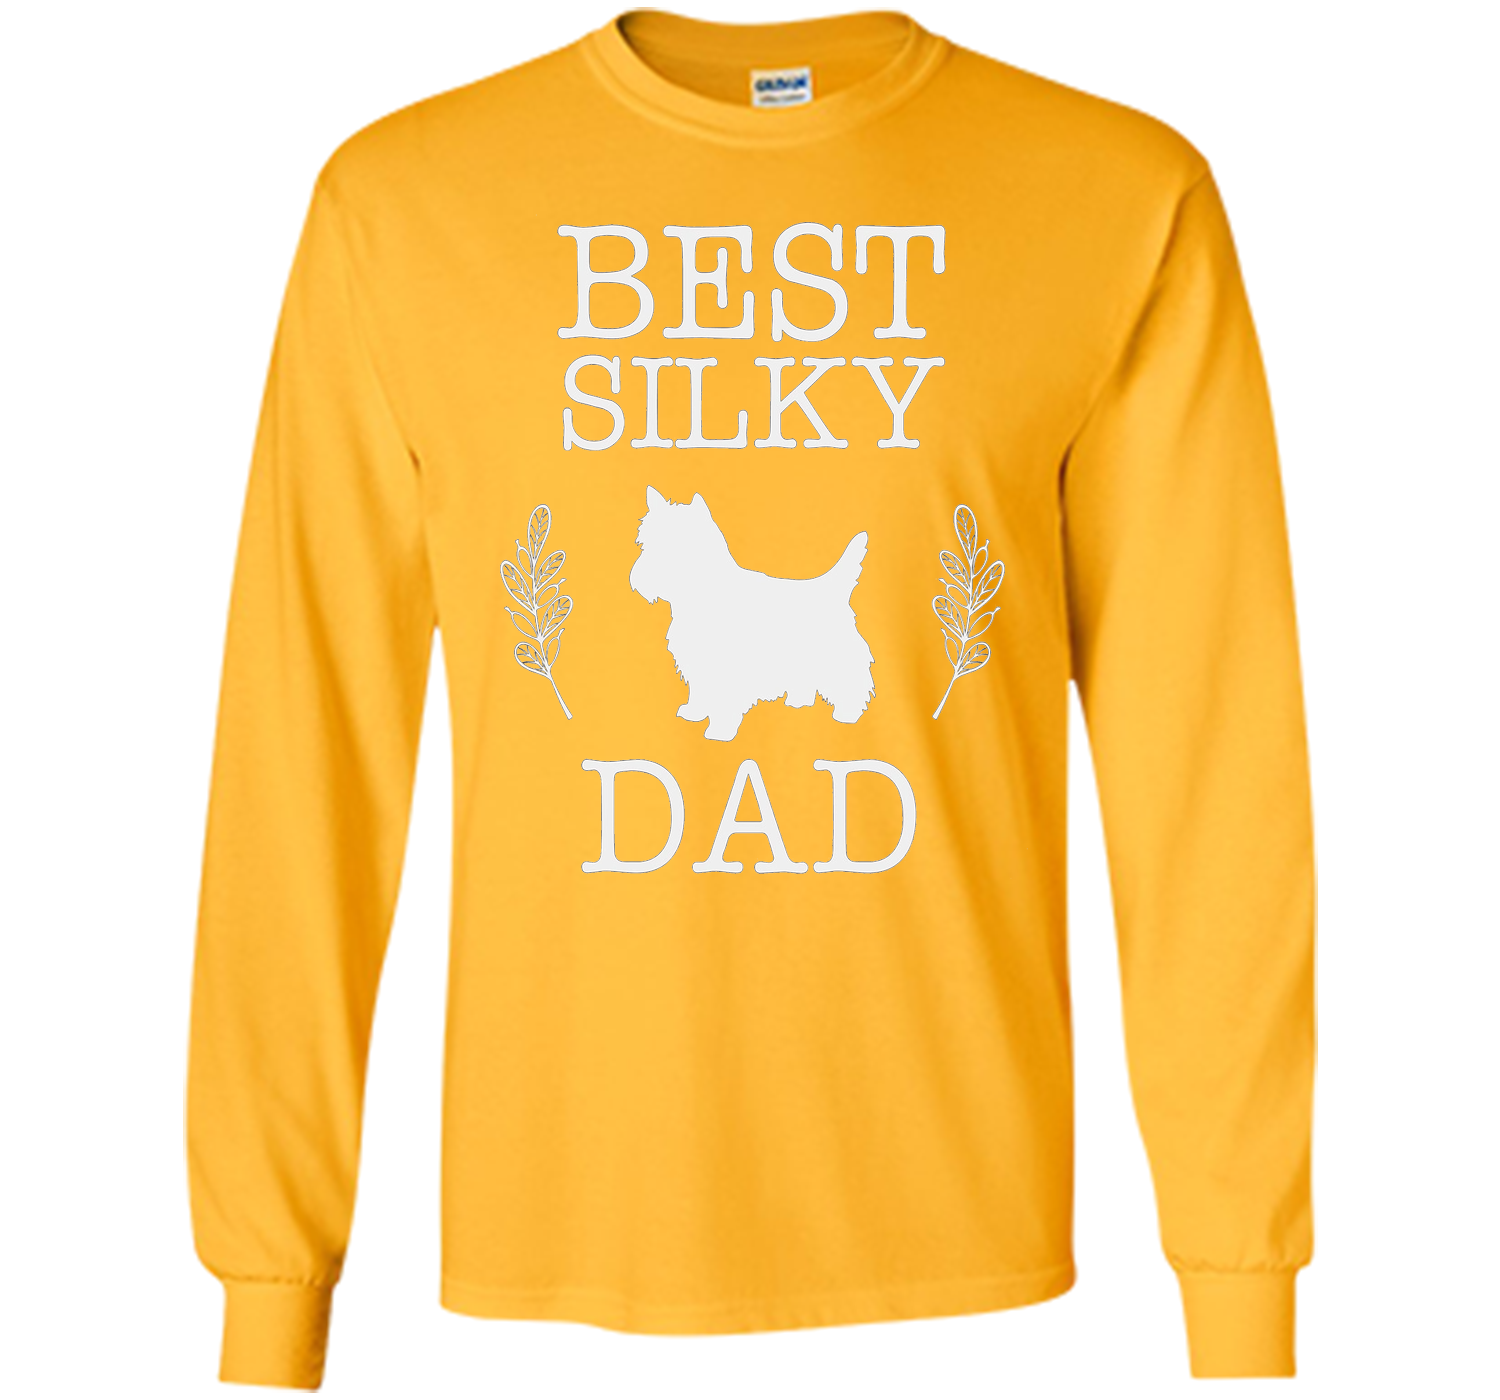 Best Silky Dad Shirt Fathers Day Gift For Dog Lover